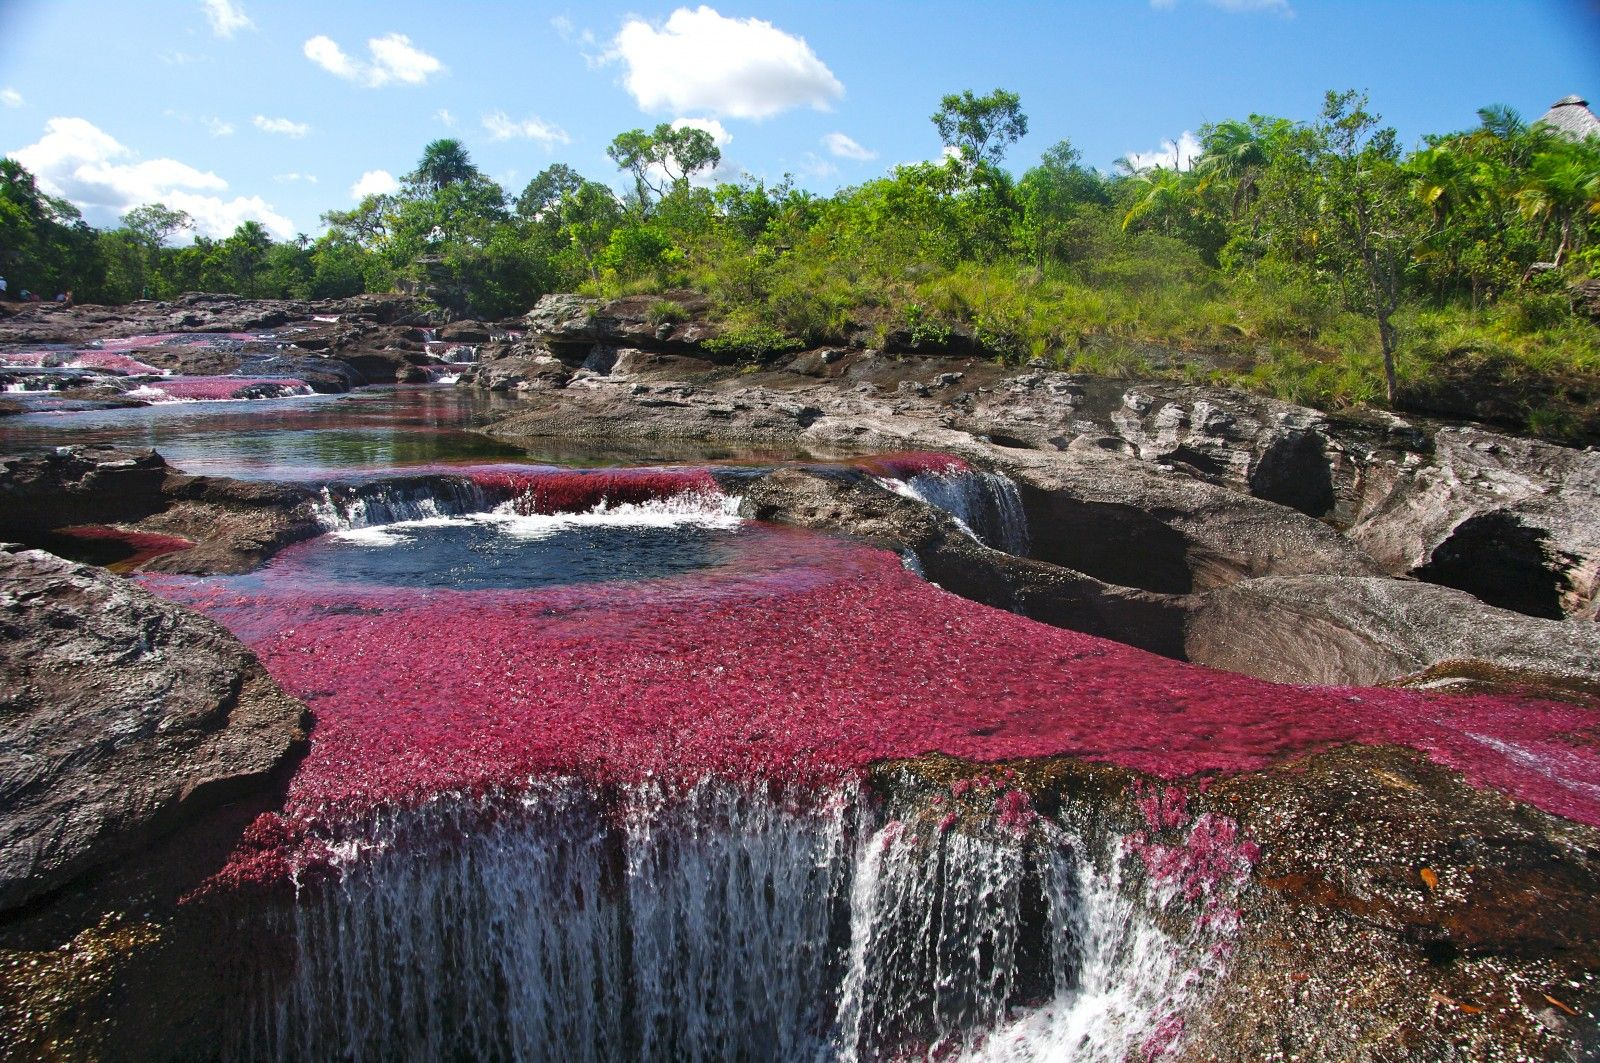 Caño Cristales, Colombia. This river is colored red by an aquatic plant that blooms in the fall.